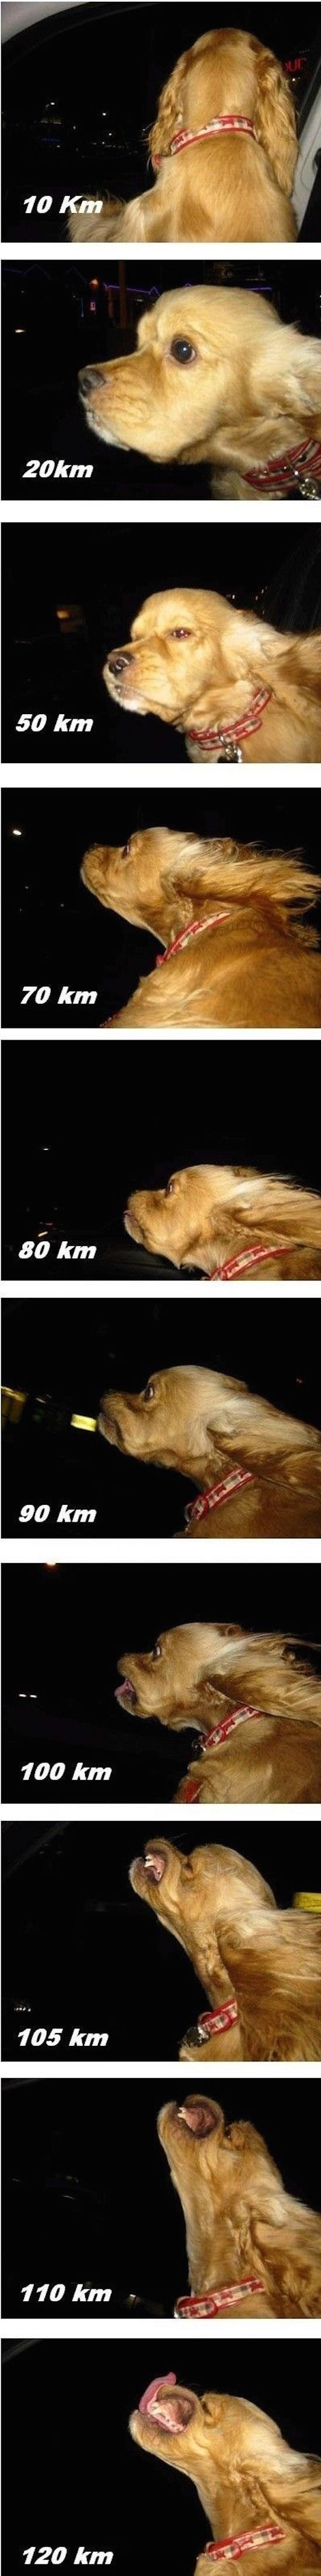 funny image of dog sticking head out car window at different speeds